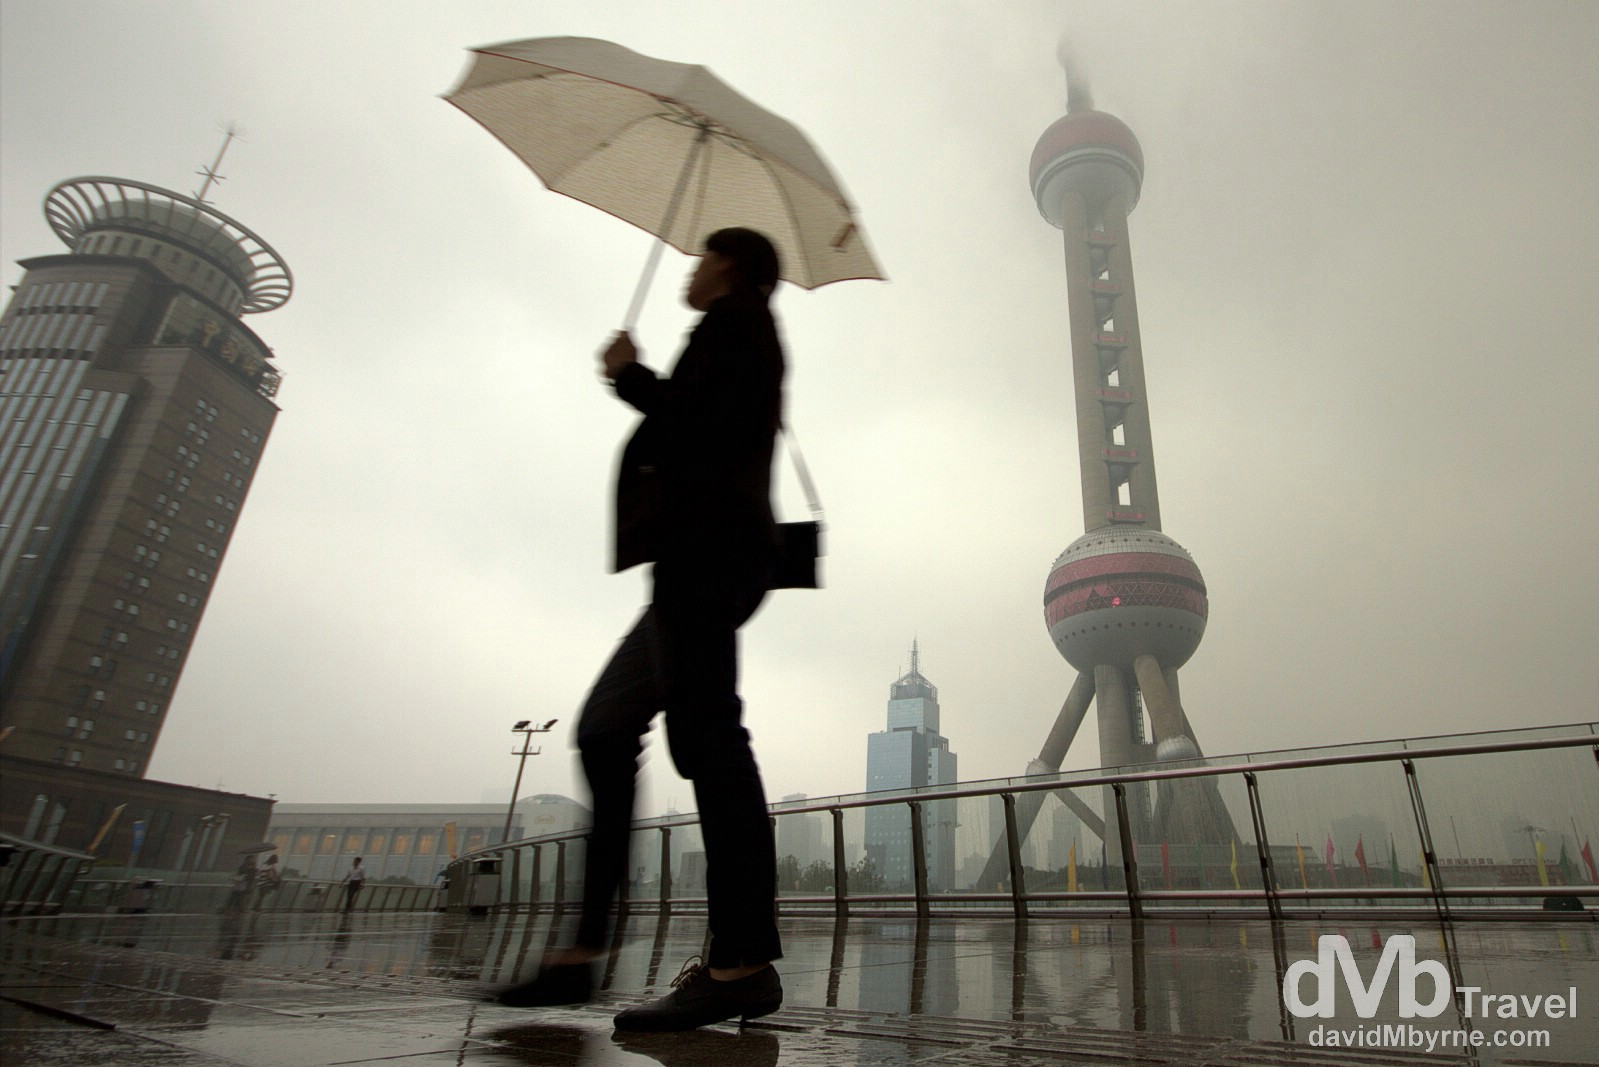 A dreary day in the Pudong area of Shanghai, China. October 22nd 2012.